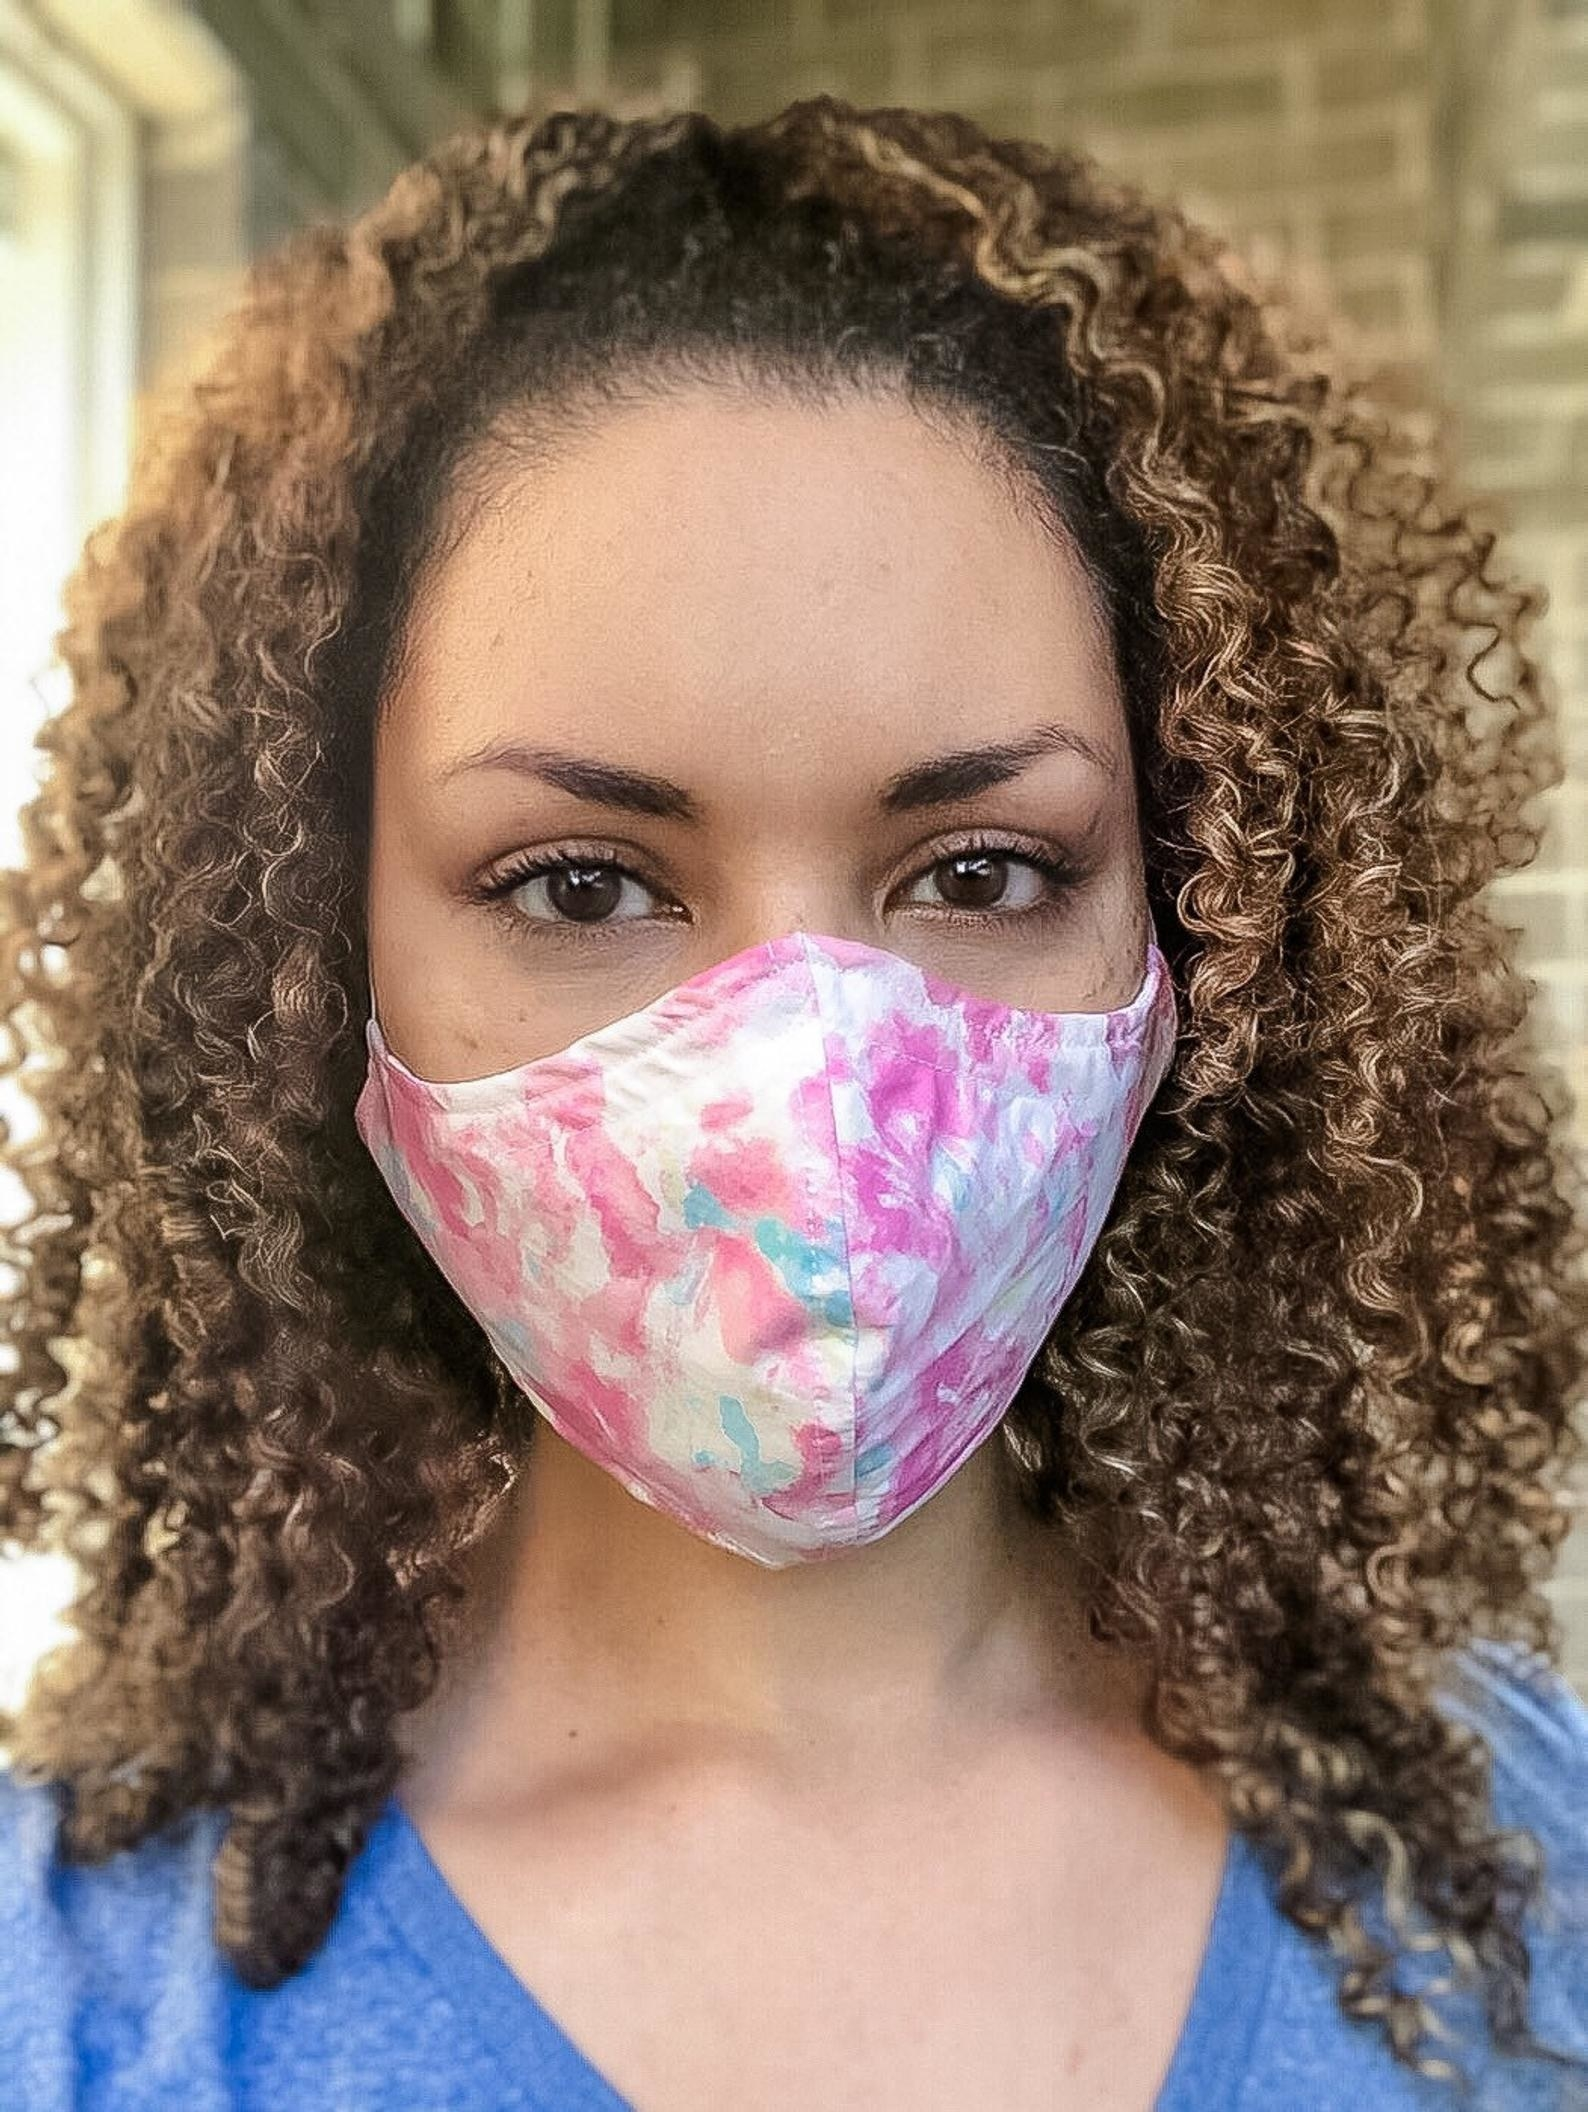 A model in a pink and blue watercolored face mask